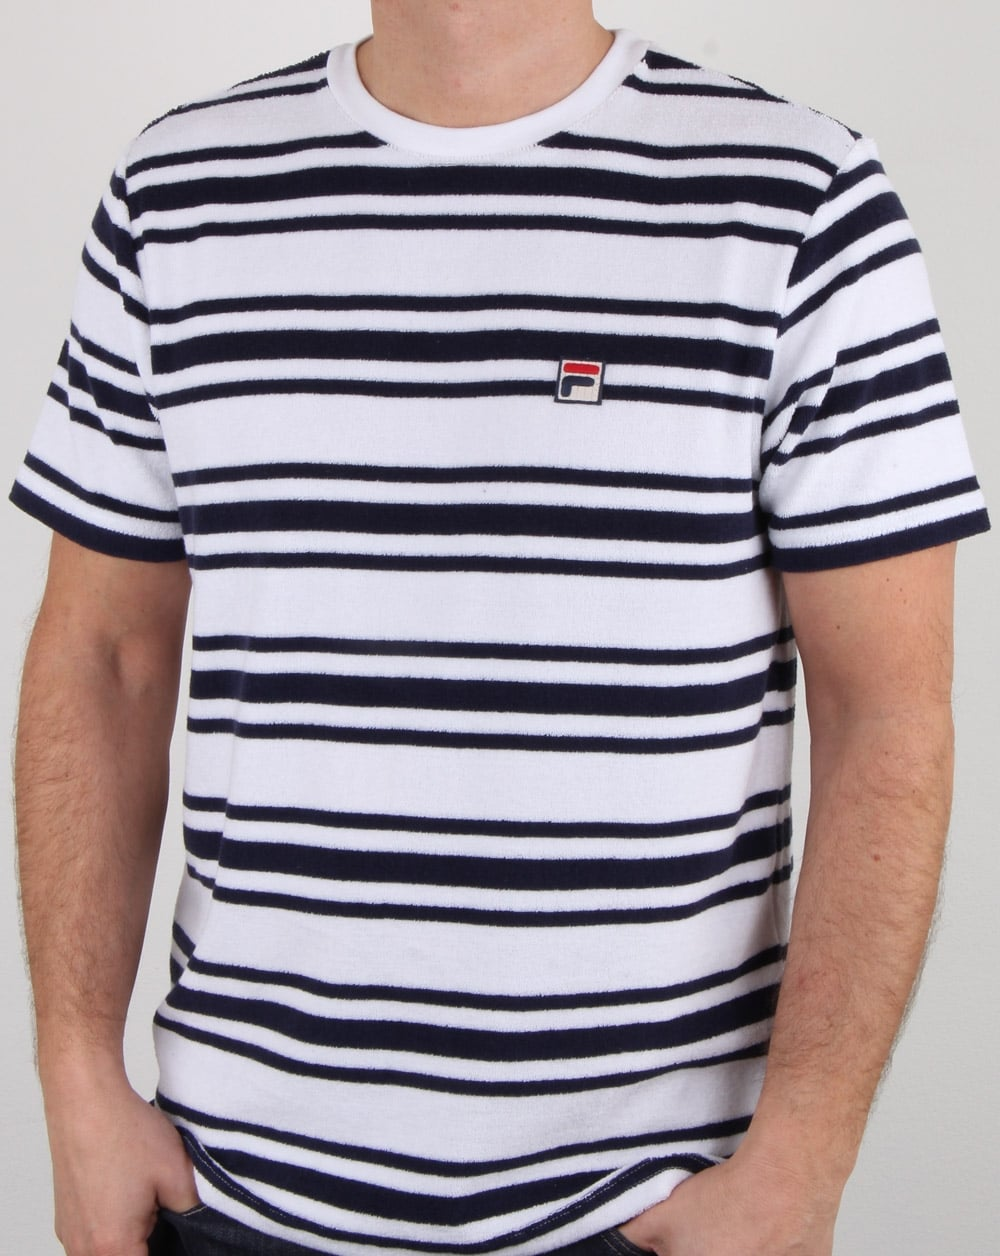 e2d0410a2954ef Fila Vintage Polo Shirt In Towelling – EDGE Engineering and ...